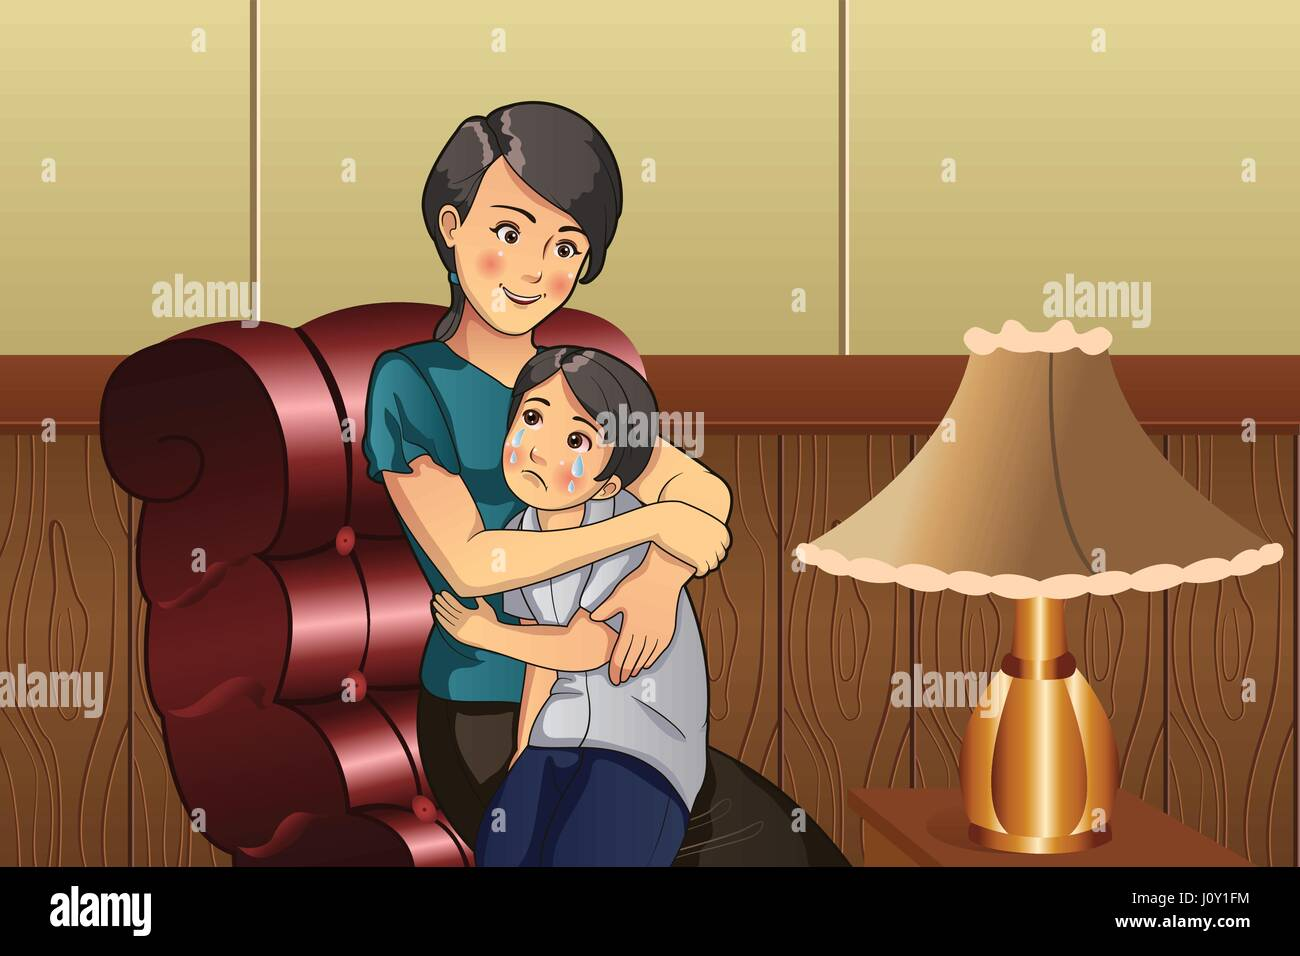 A vector illustration of mother comforting her crying little kid - Stock Vector